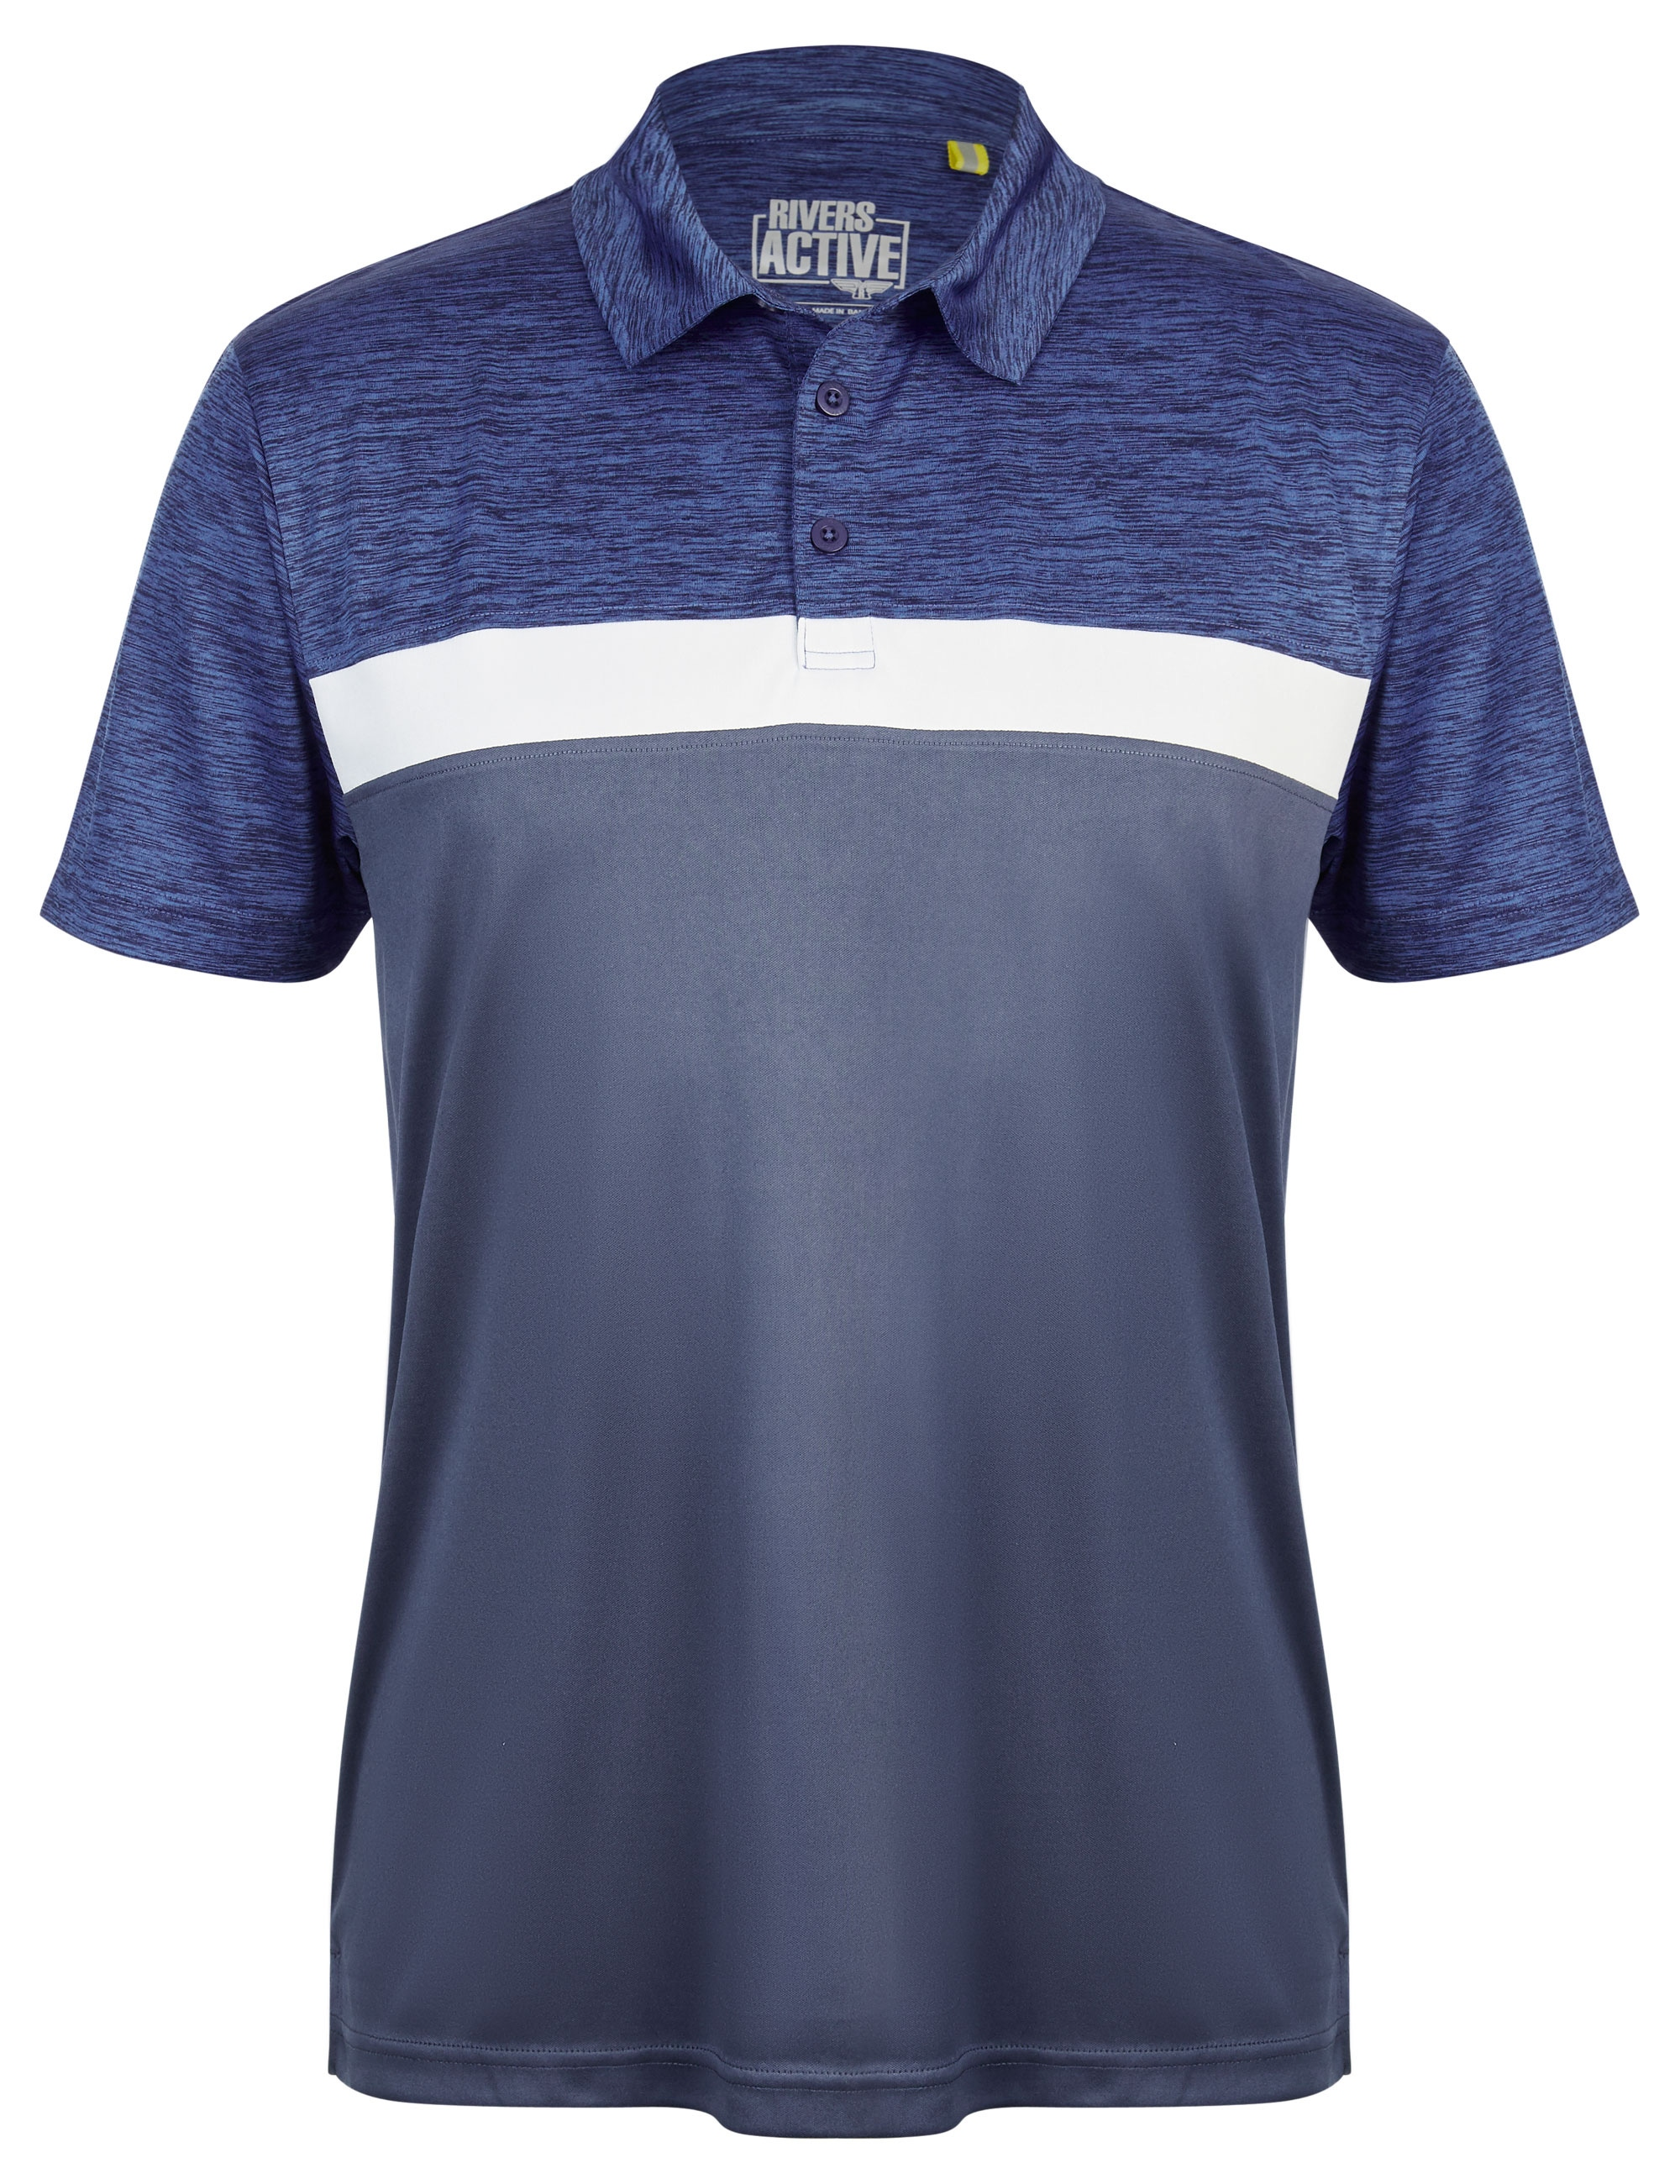 Rivers Printed Panel Active Polo - Navy/white/blue